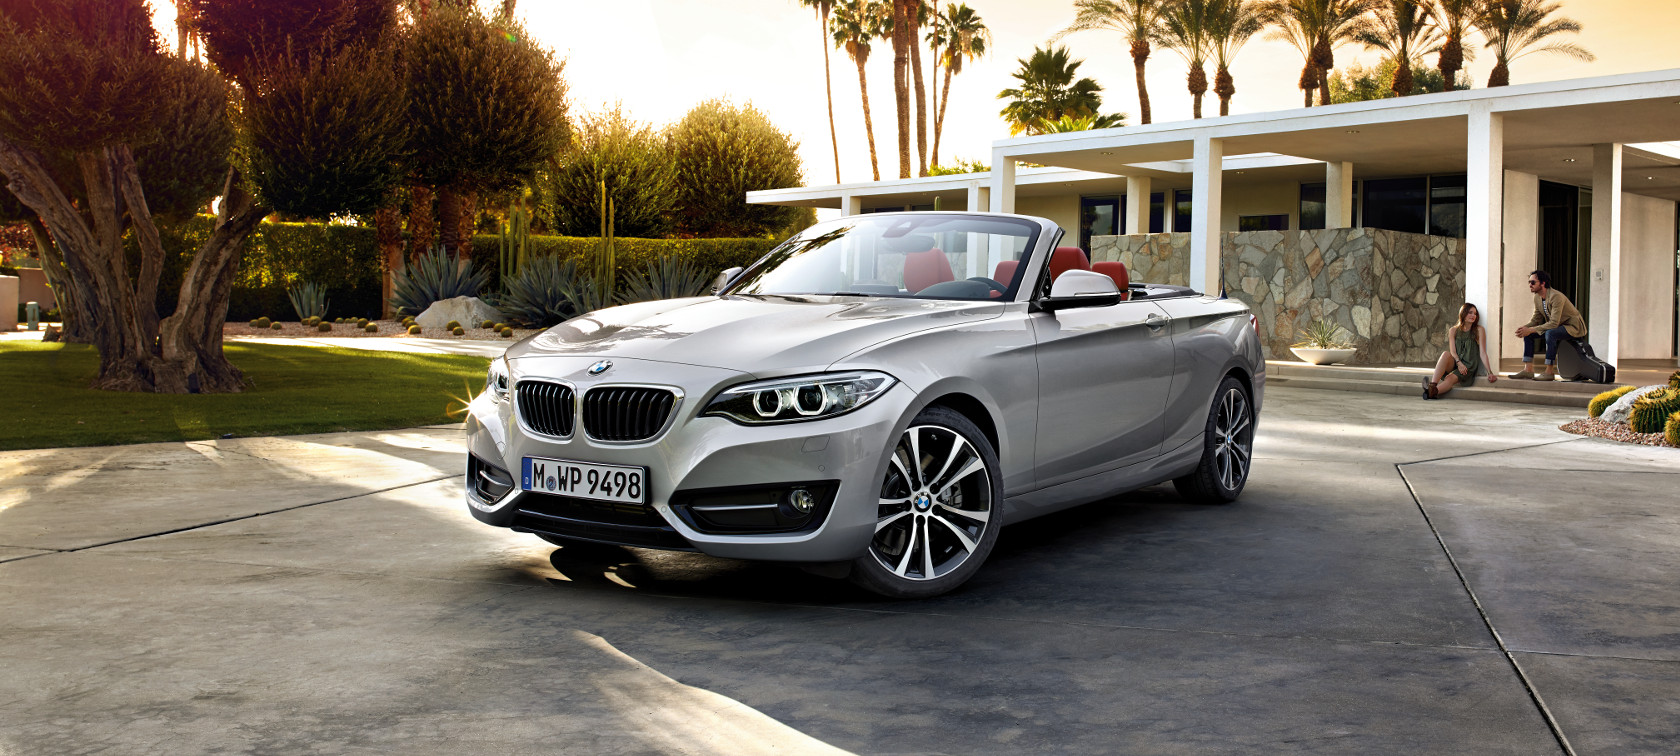 BMW 2 Series Convertible : At a Glance